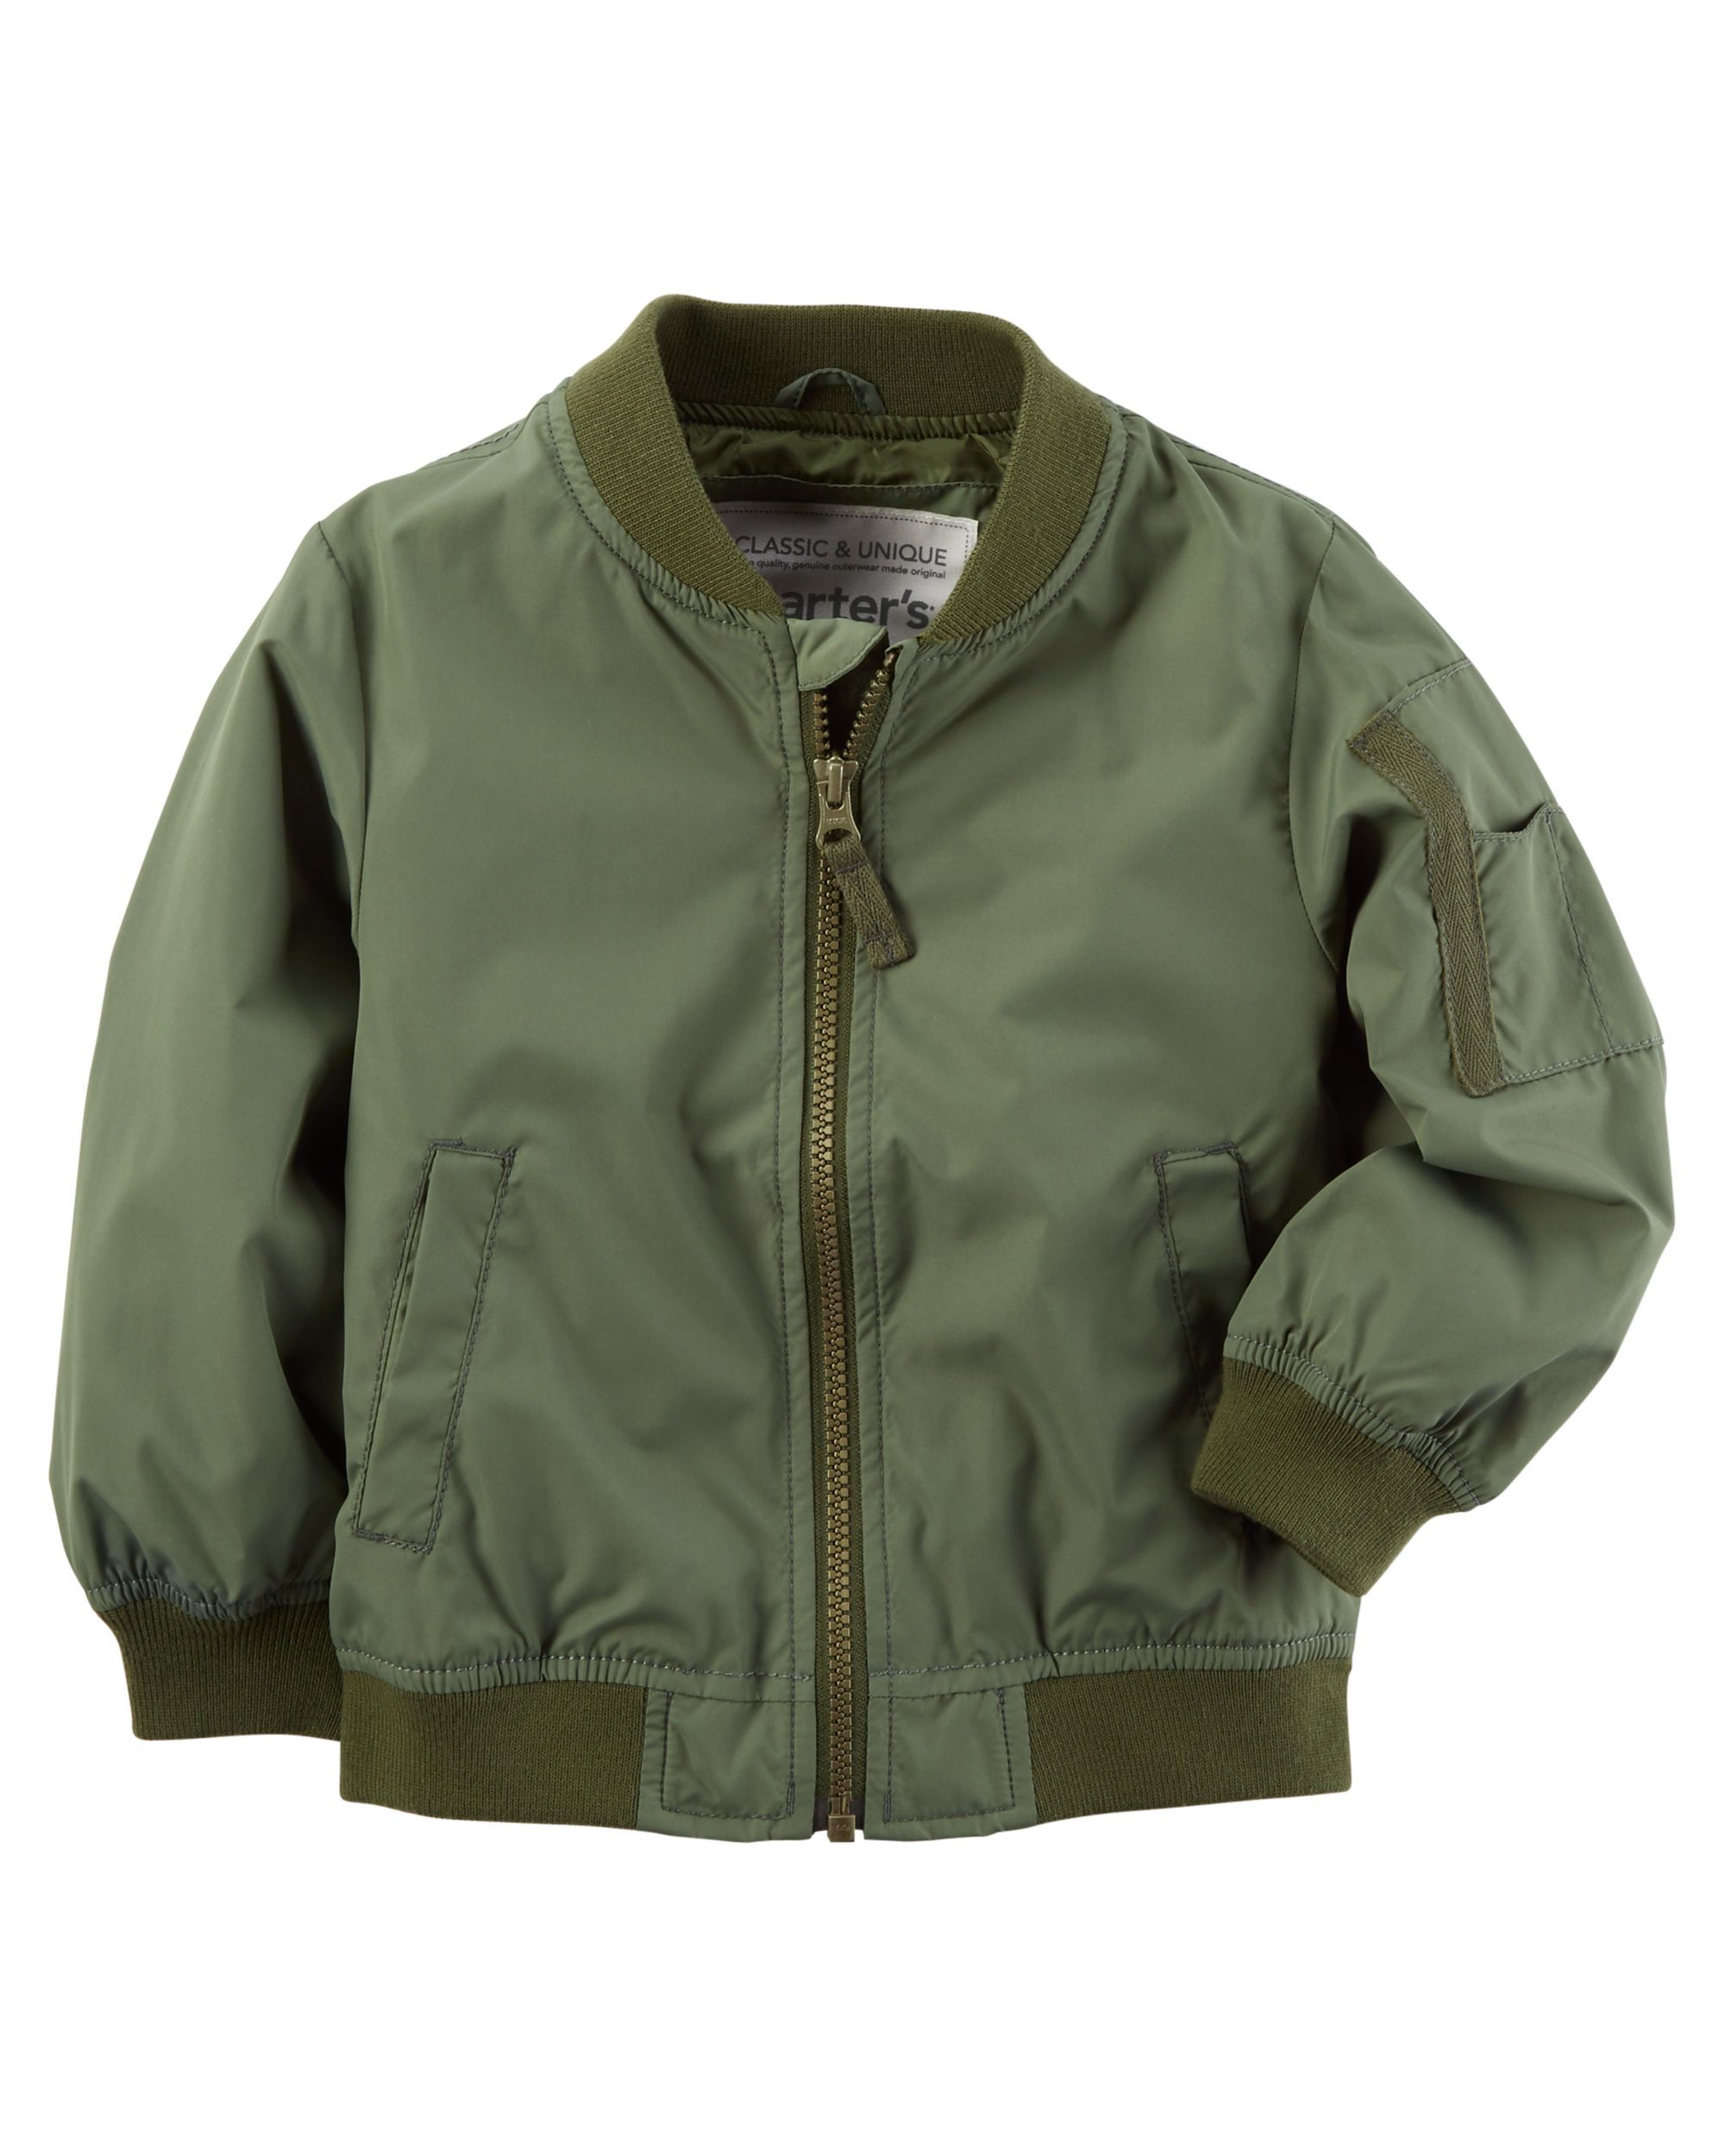 Bomber Jacket | Boys bomber jacket, Kids boys and Babies clothes